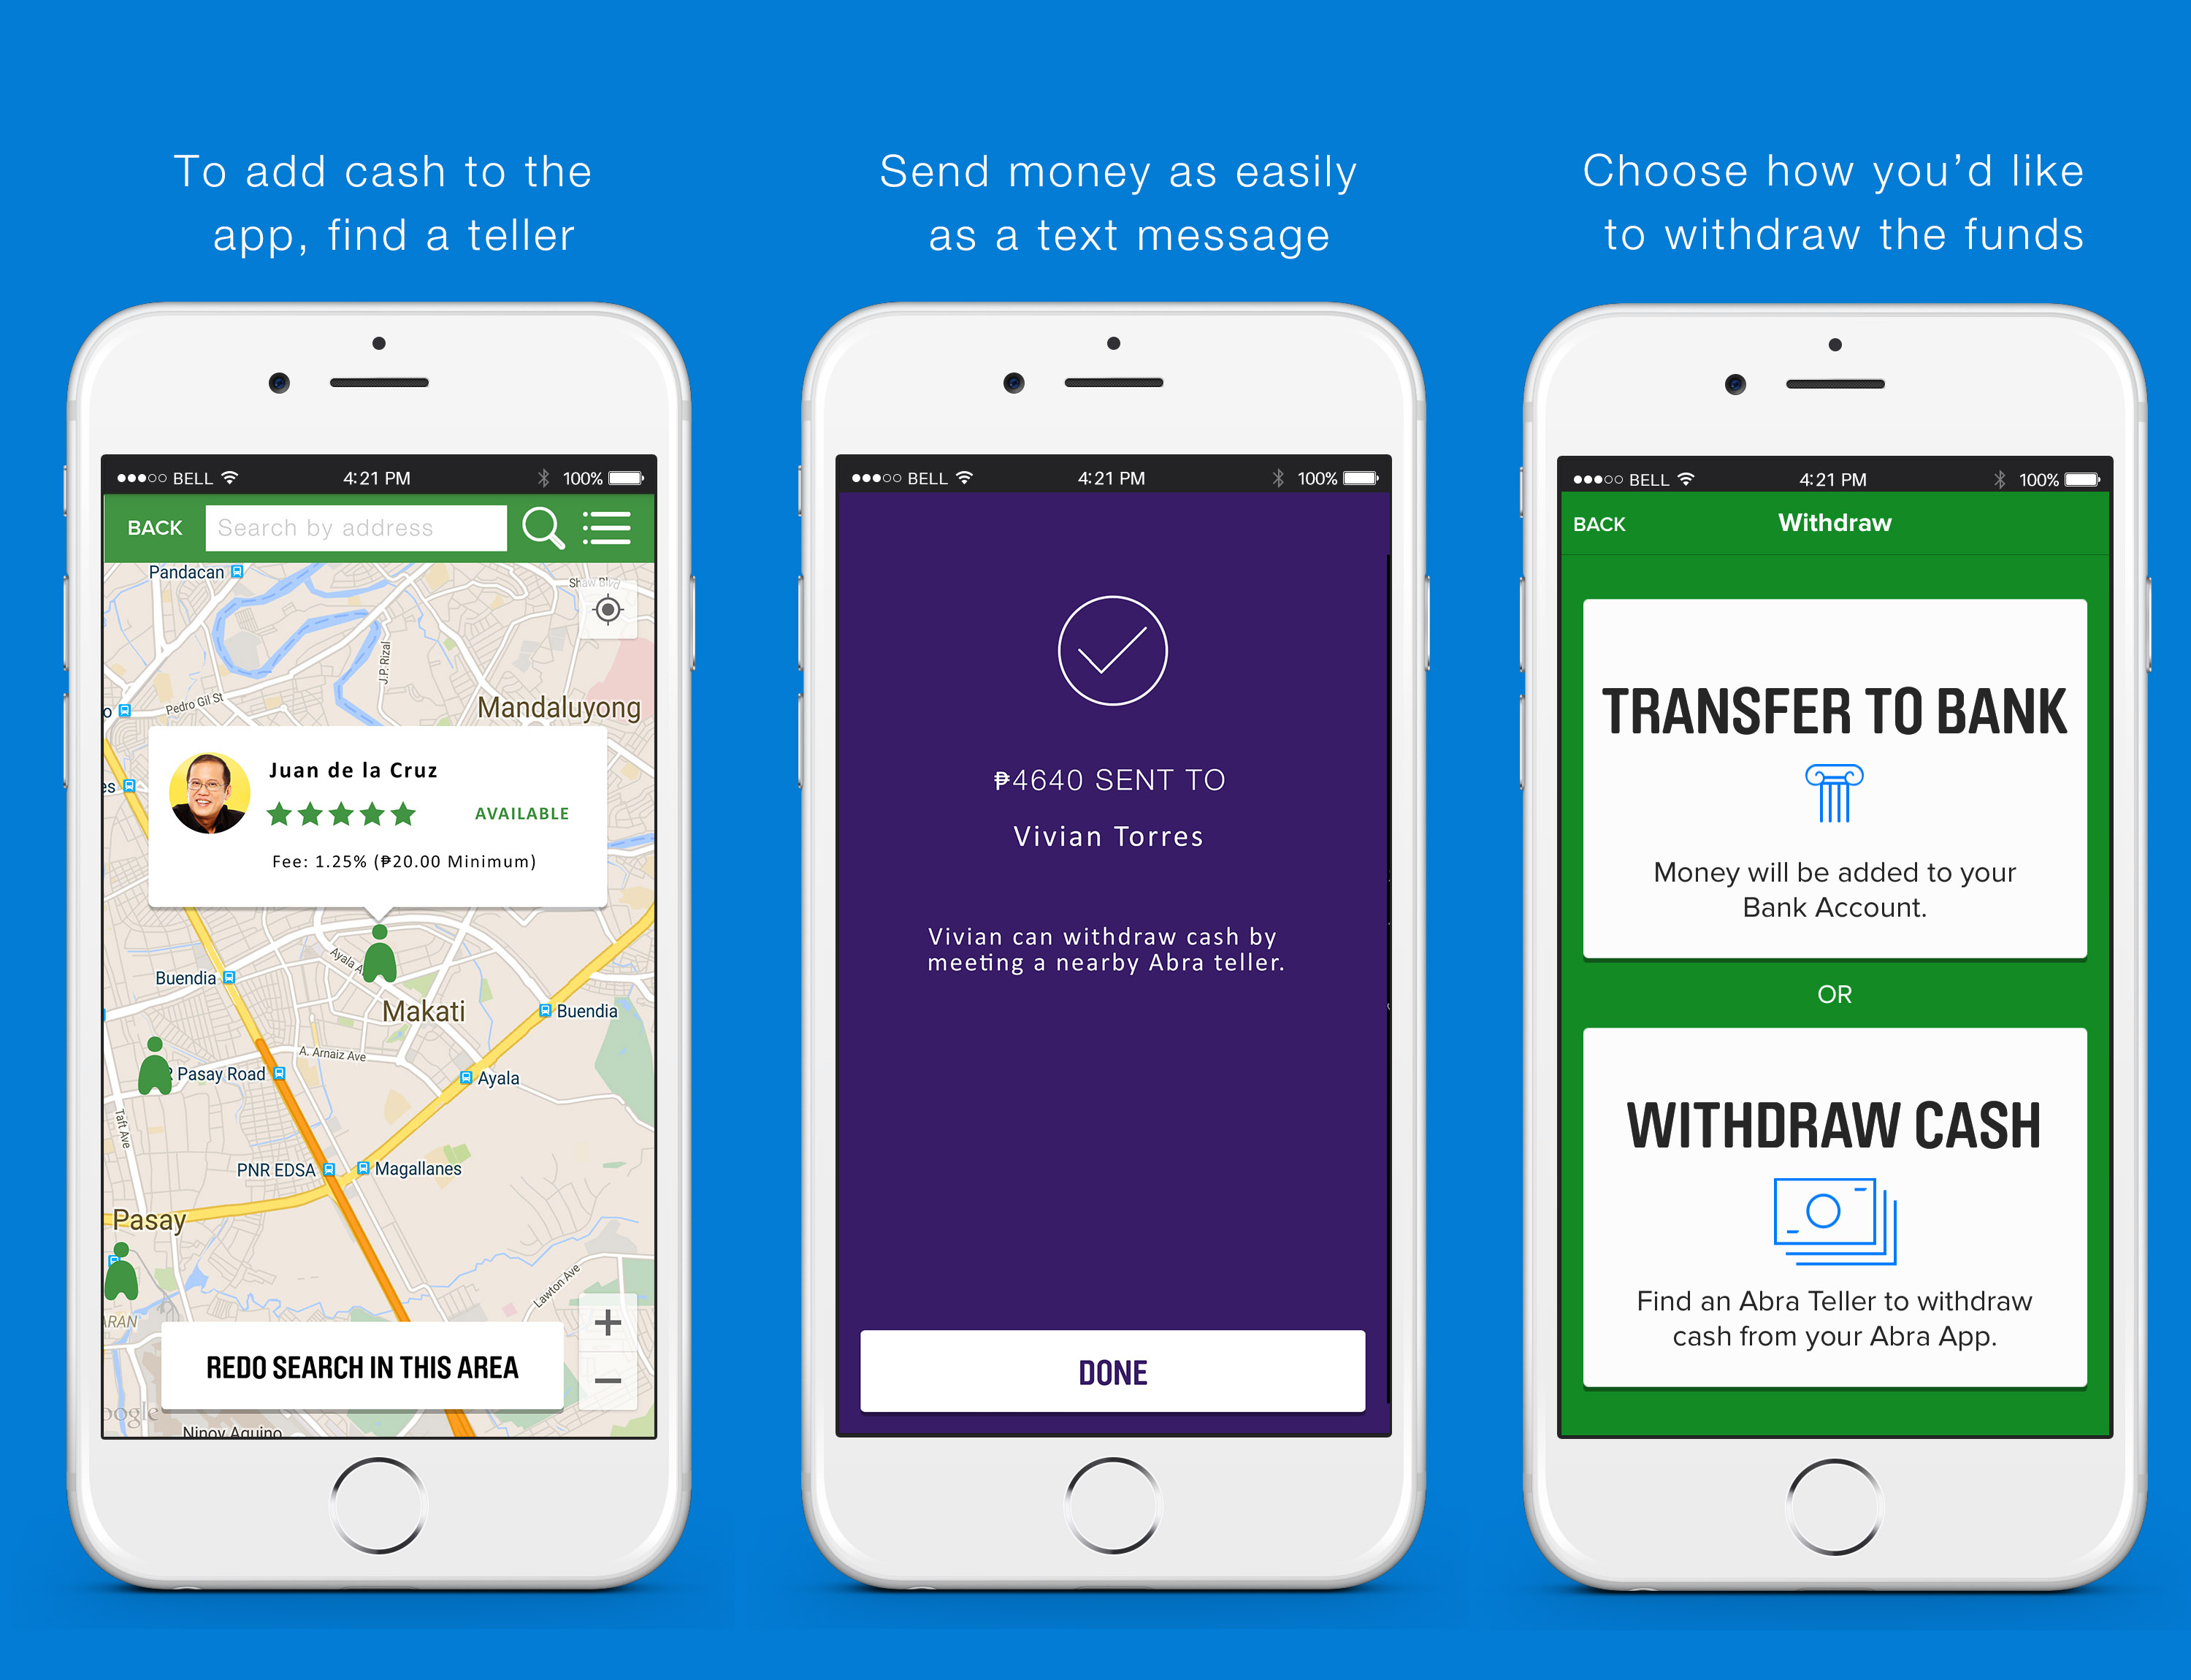 Send money instantly - no bank account required